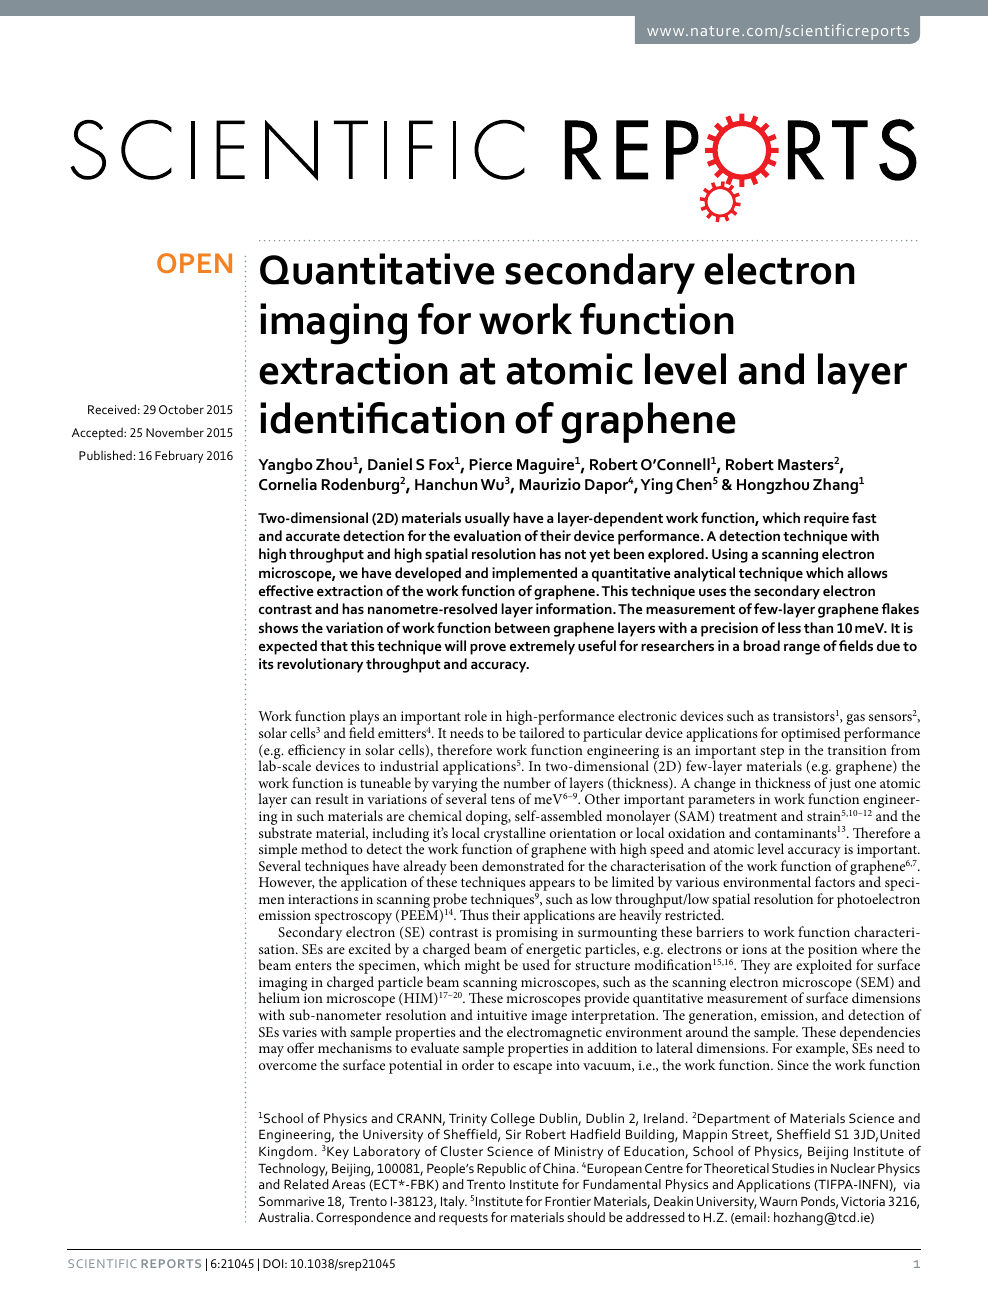 Quantitative secondary electron imaging for work function